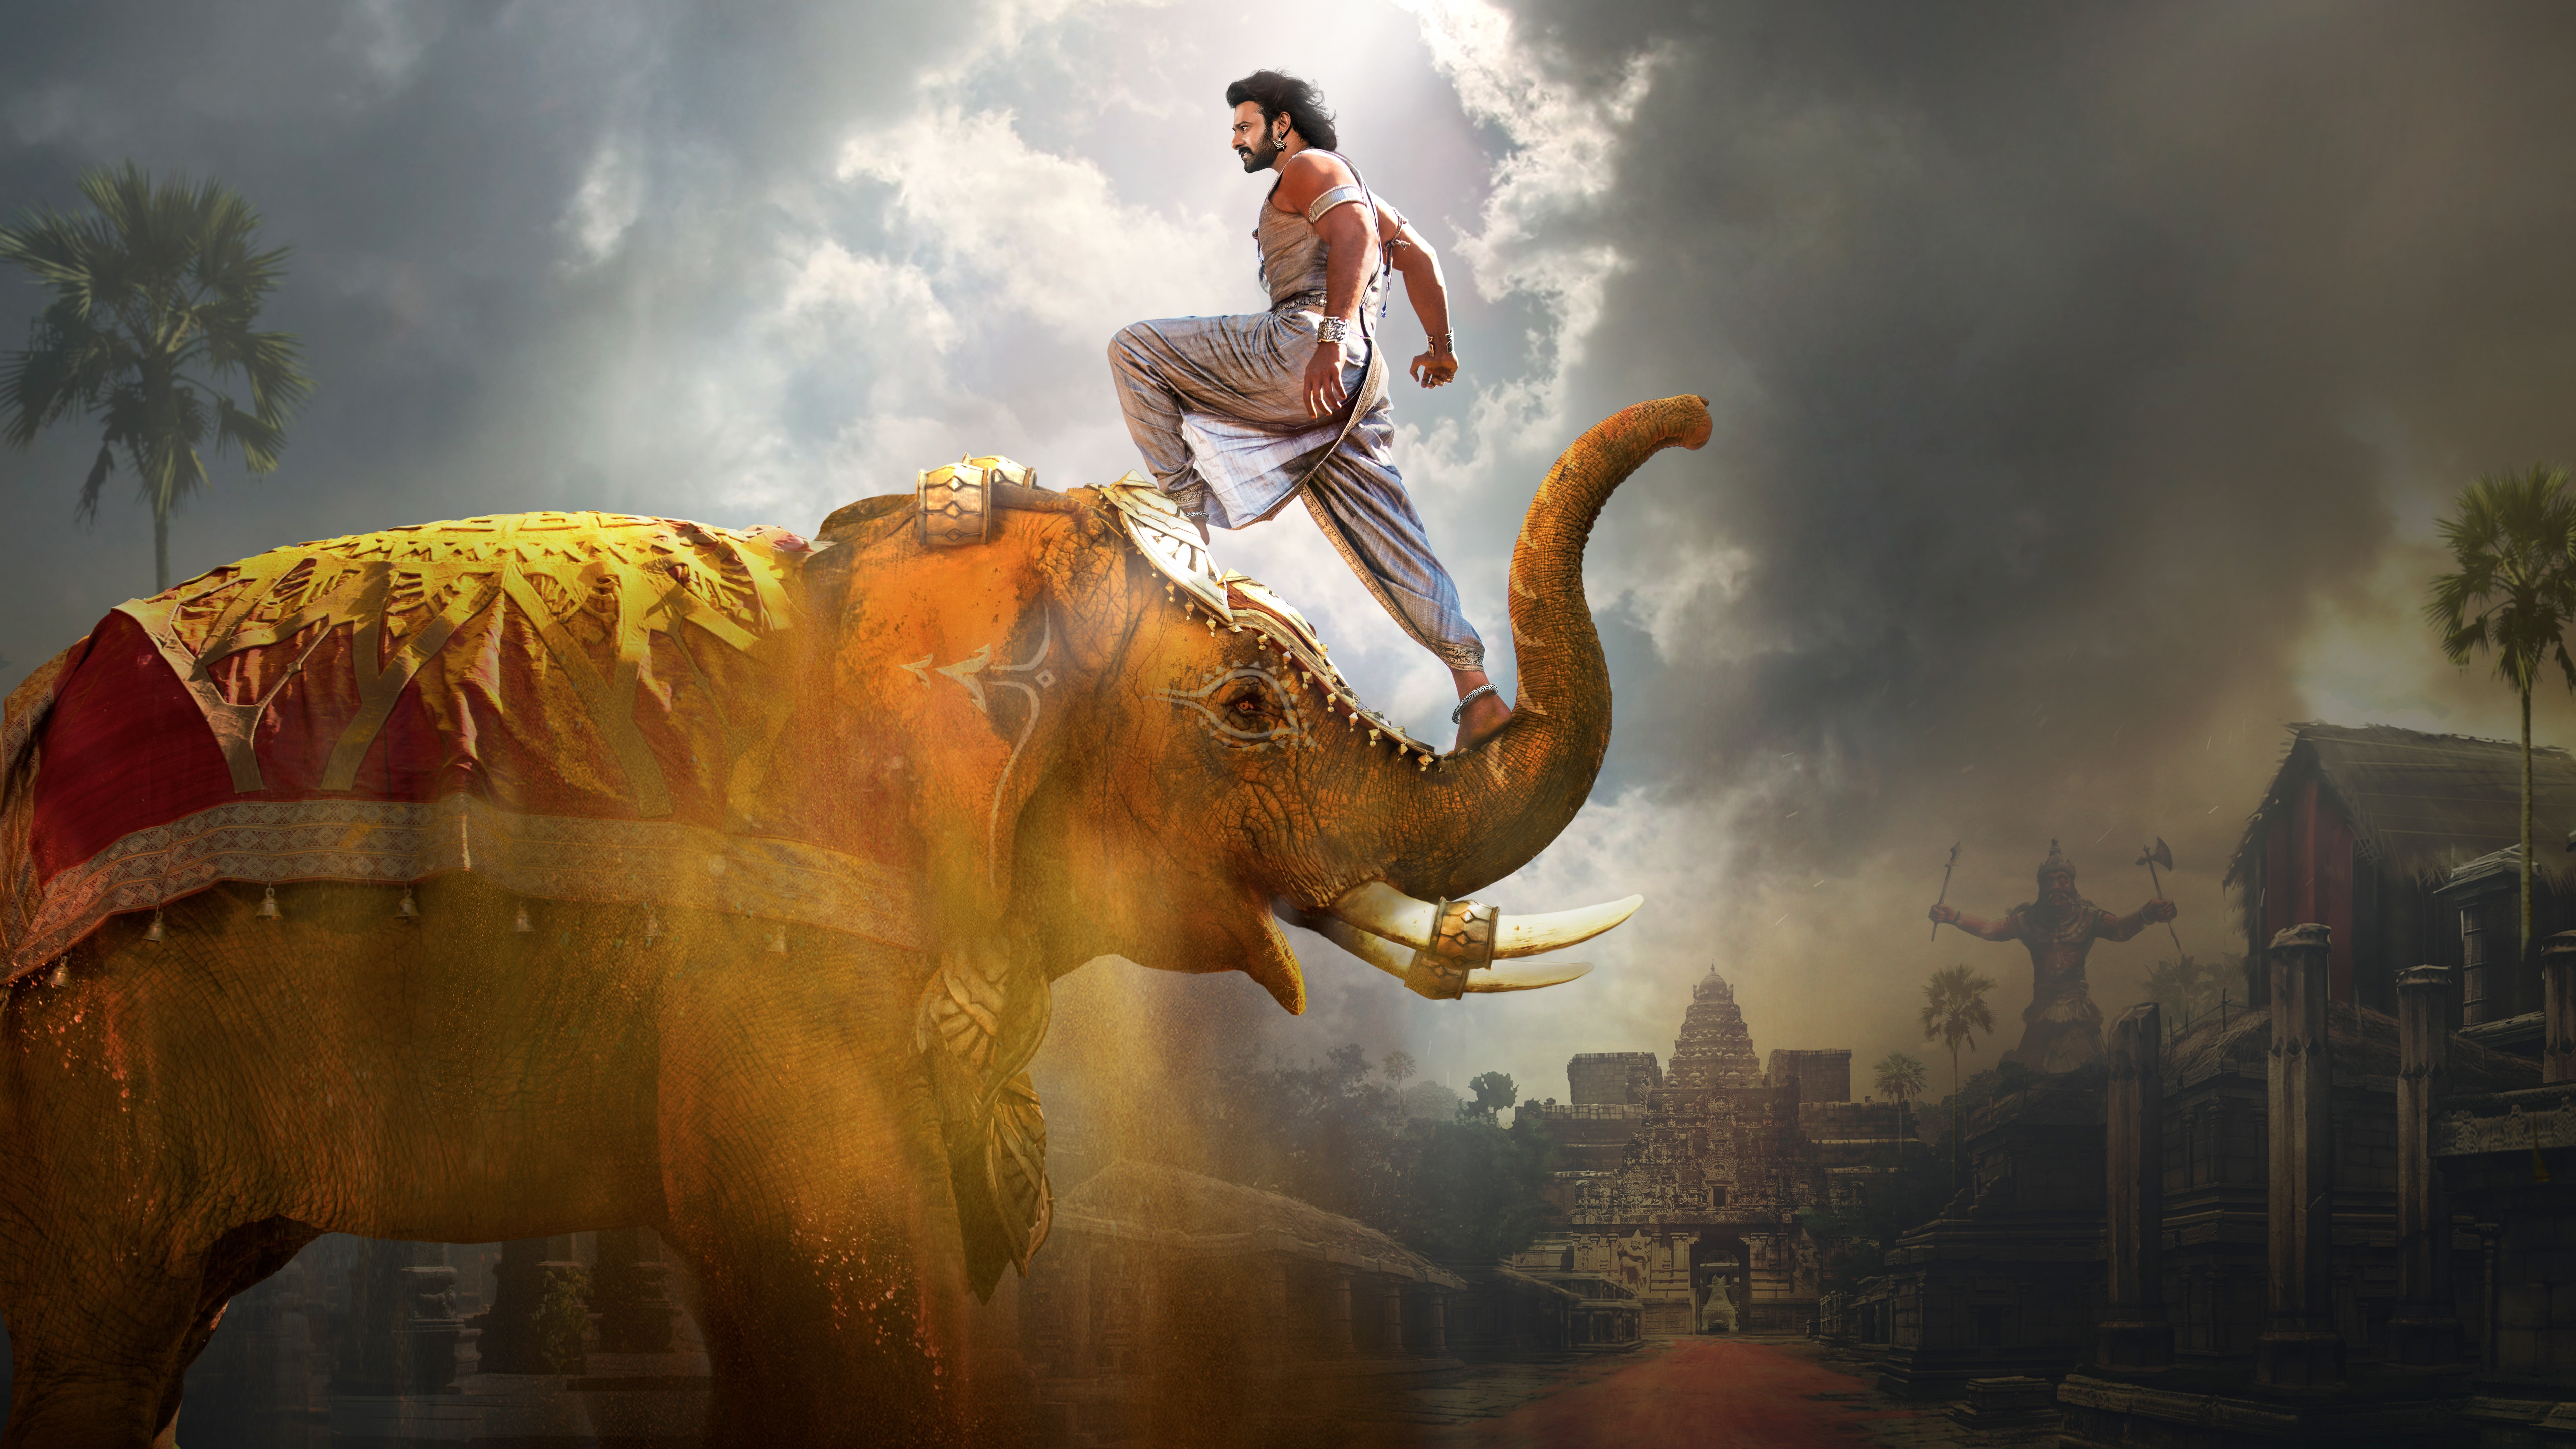 baahubali_2_the_conclusion_2017_4k_8k-7680x4320